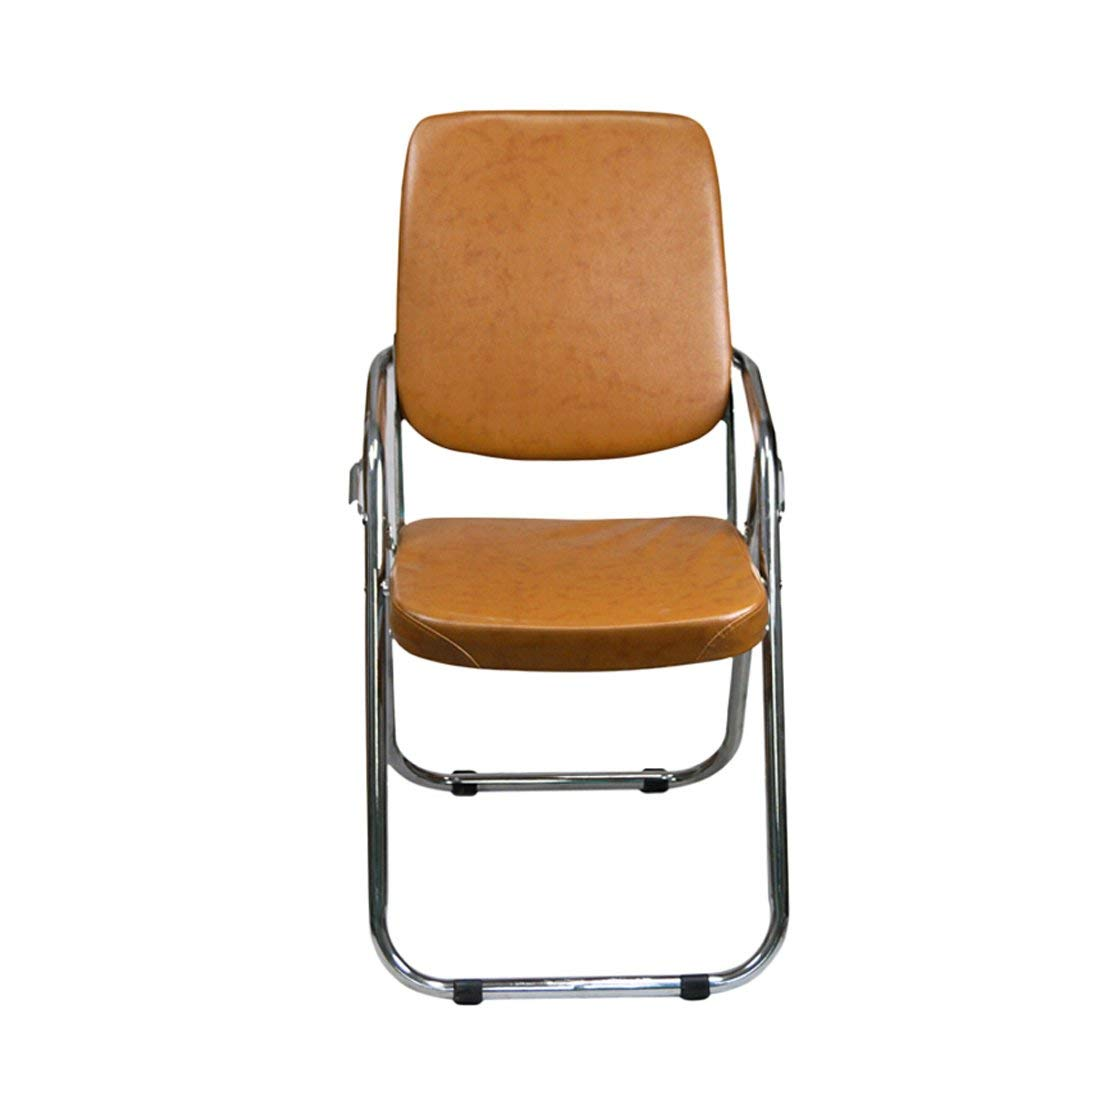 GFL Chairs Folding Chair Steel Material Office Training Conference Chair Backrest Household Dining Book Room Leather Sponge-filled Chair Brown (A+++)